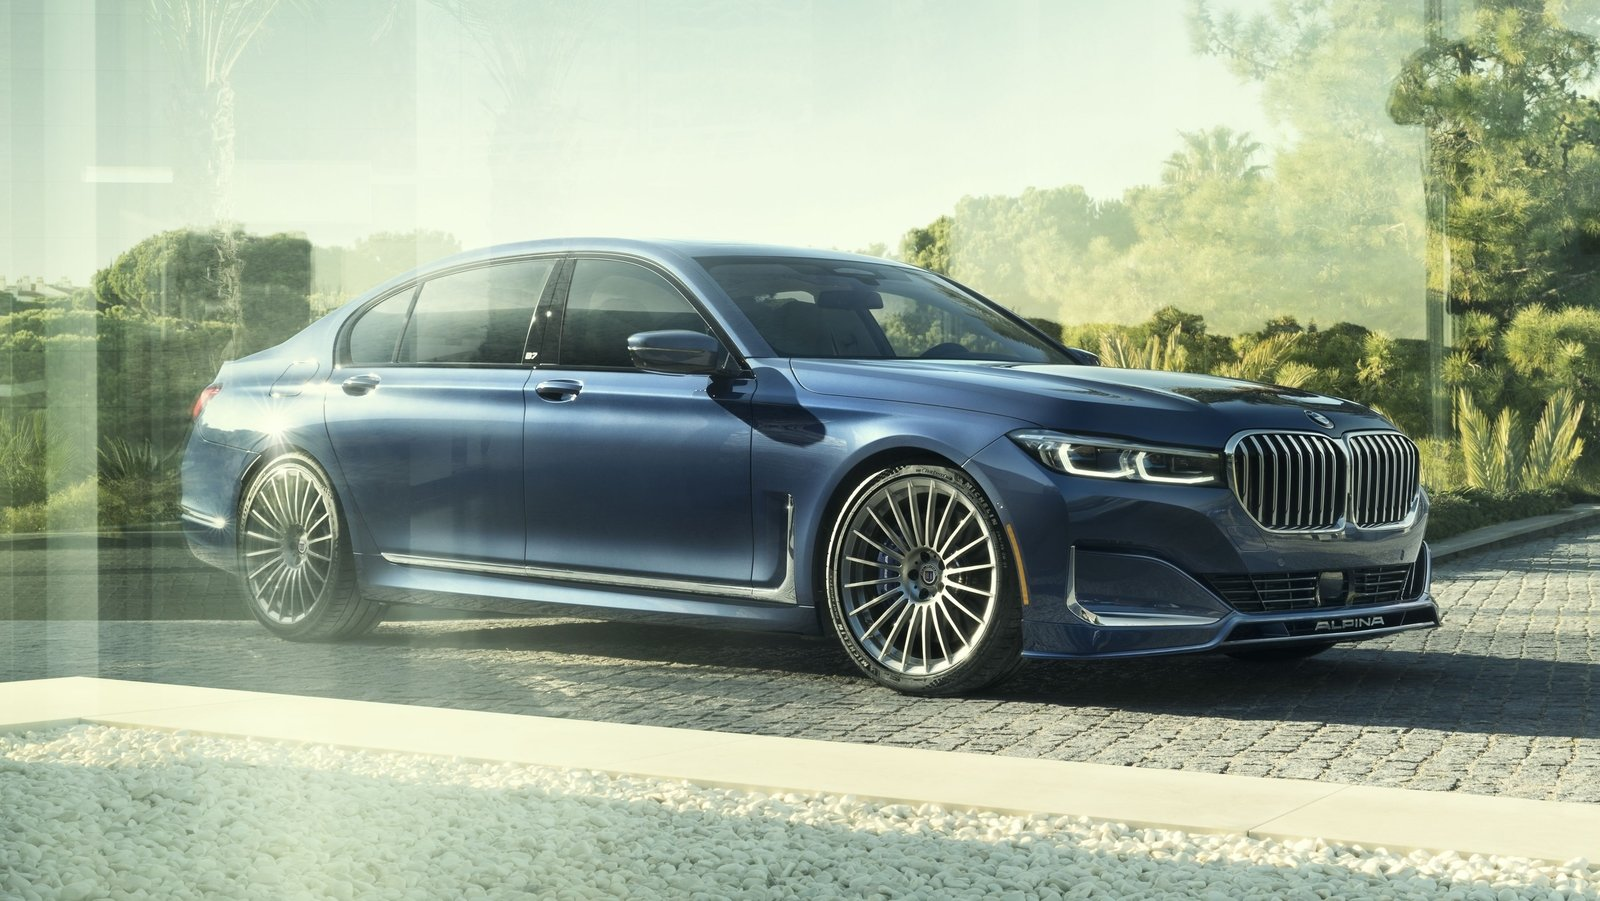 2020 Alpina B7 Xdrive Sedan Top Speed